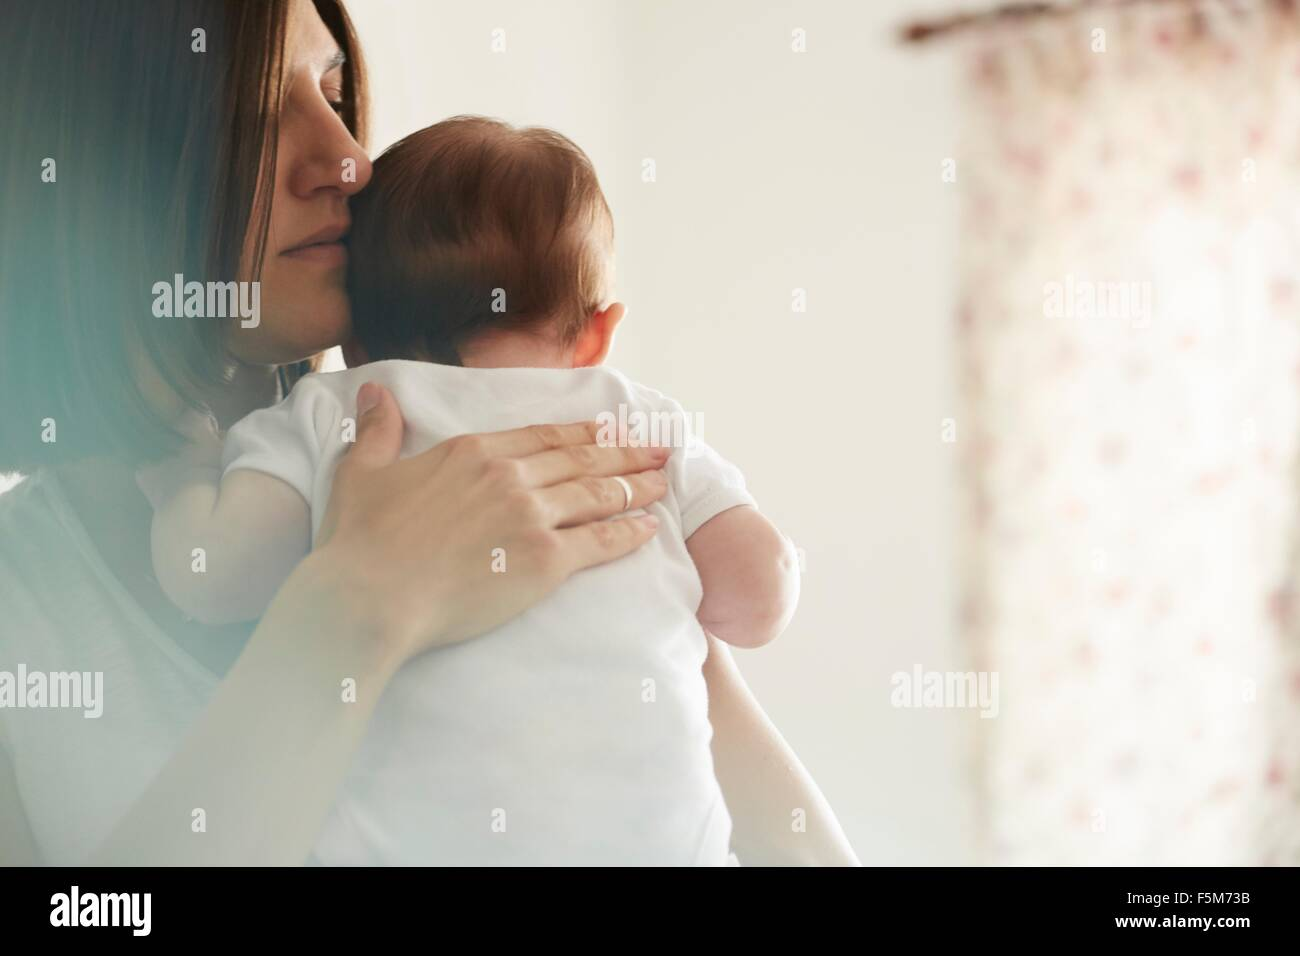 Mother carrying baby in bedroom - Stock Image